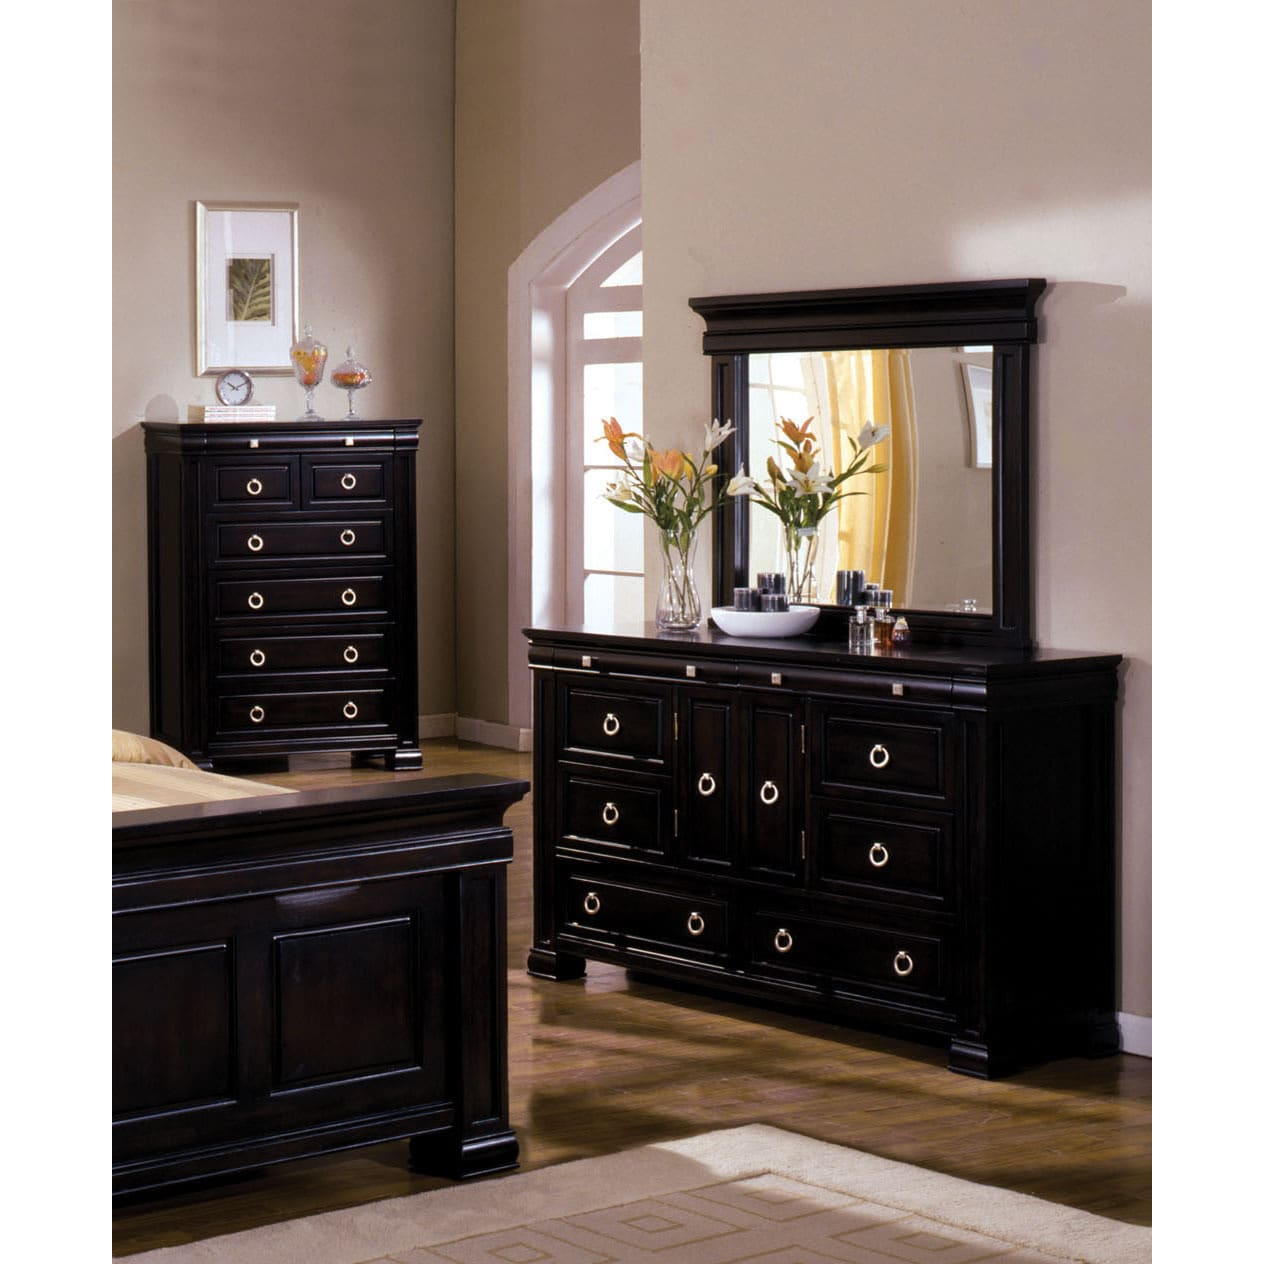 Furniture of America  Claresse Transitional 2-Piece Dresser and Mirror Set